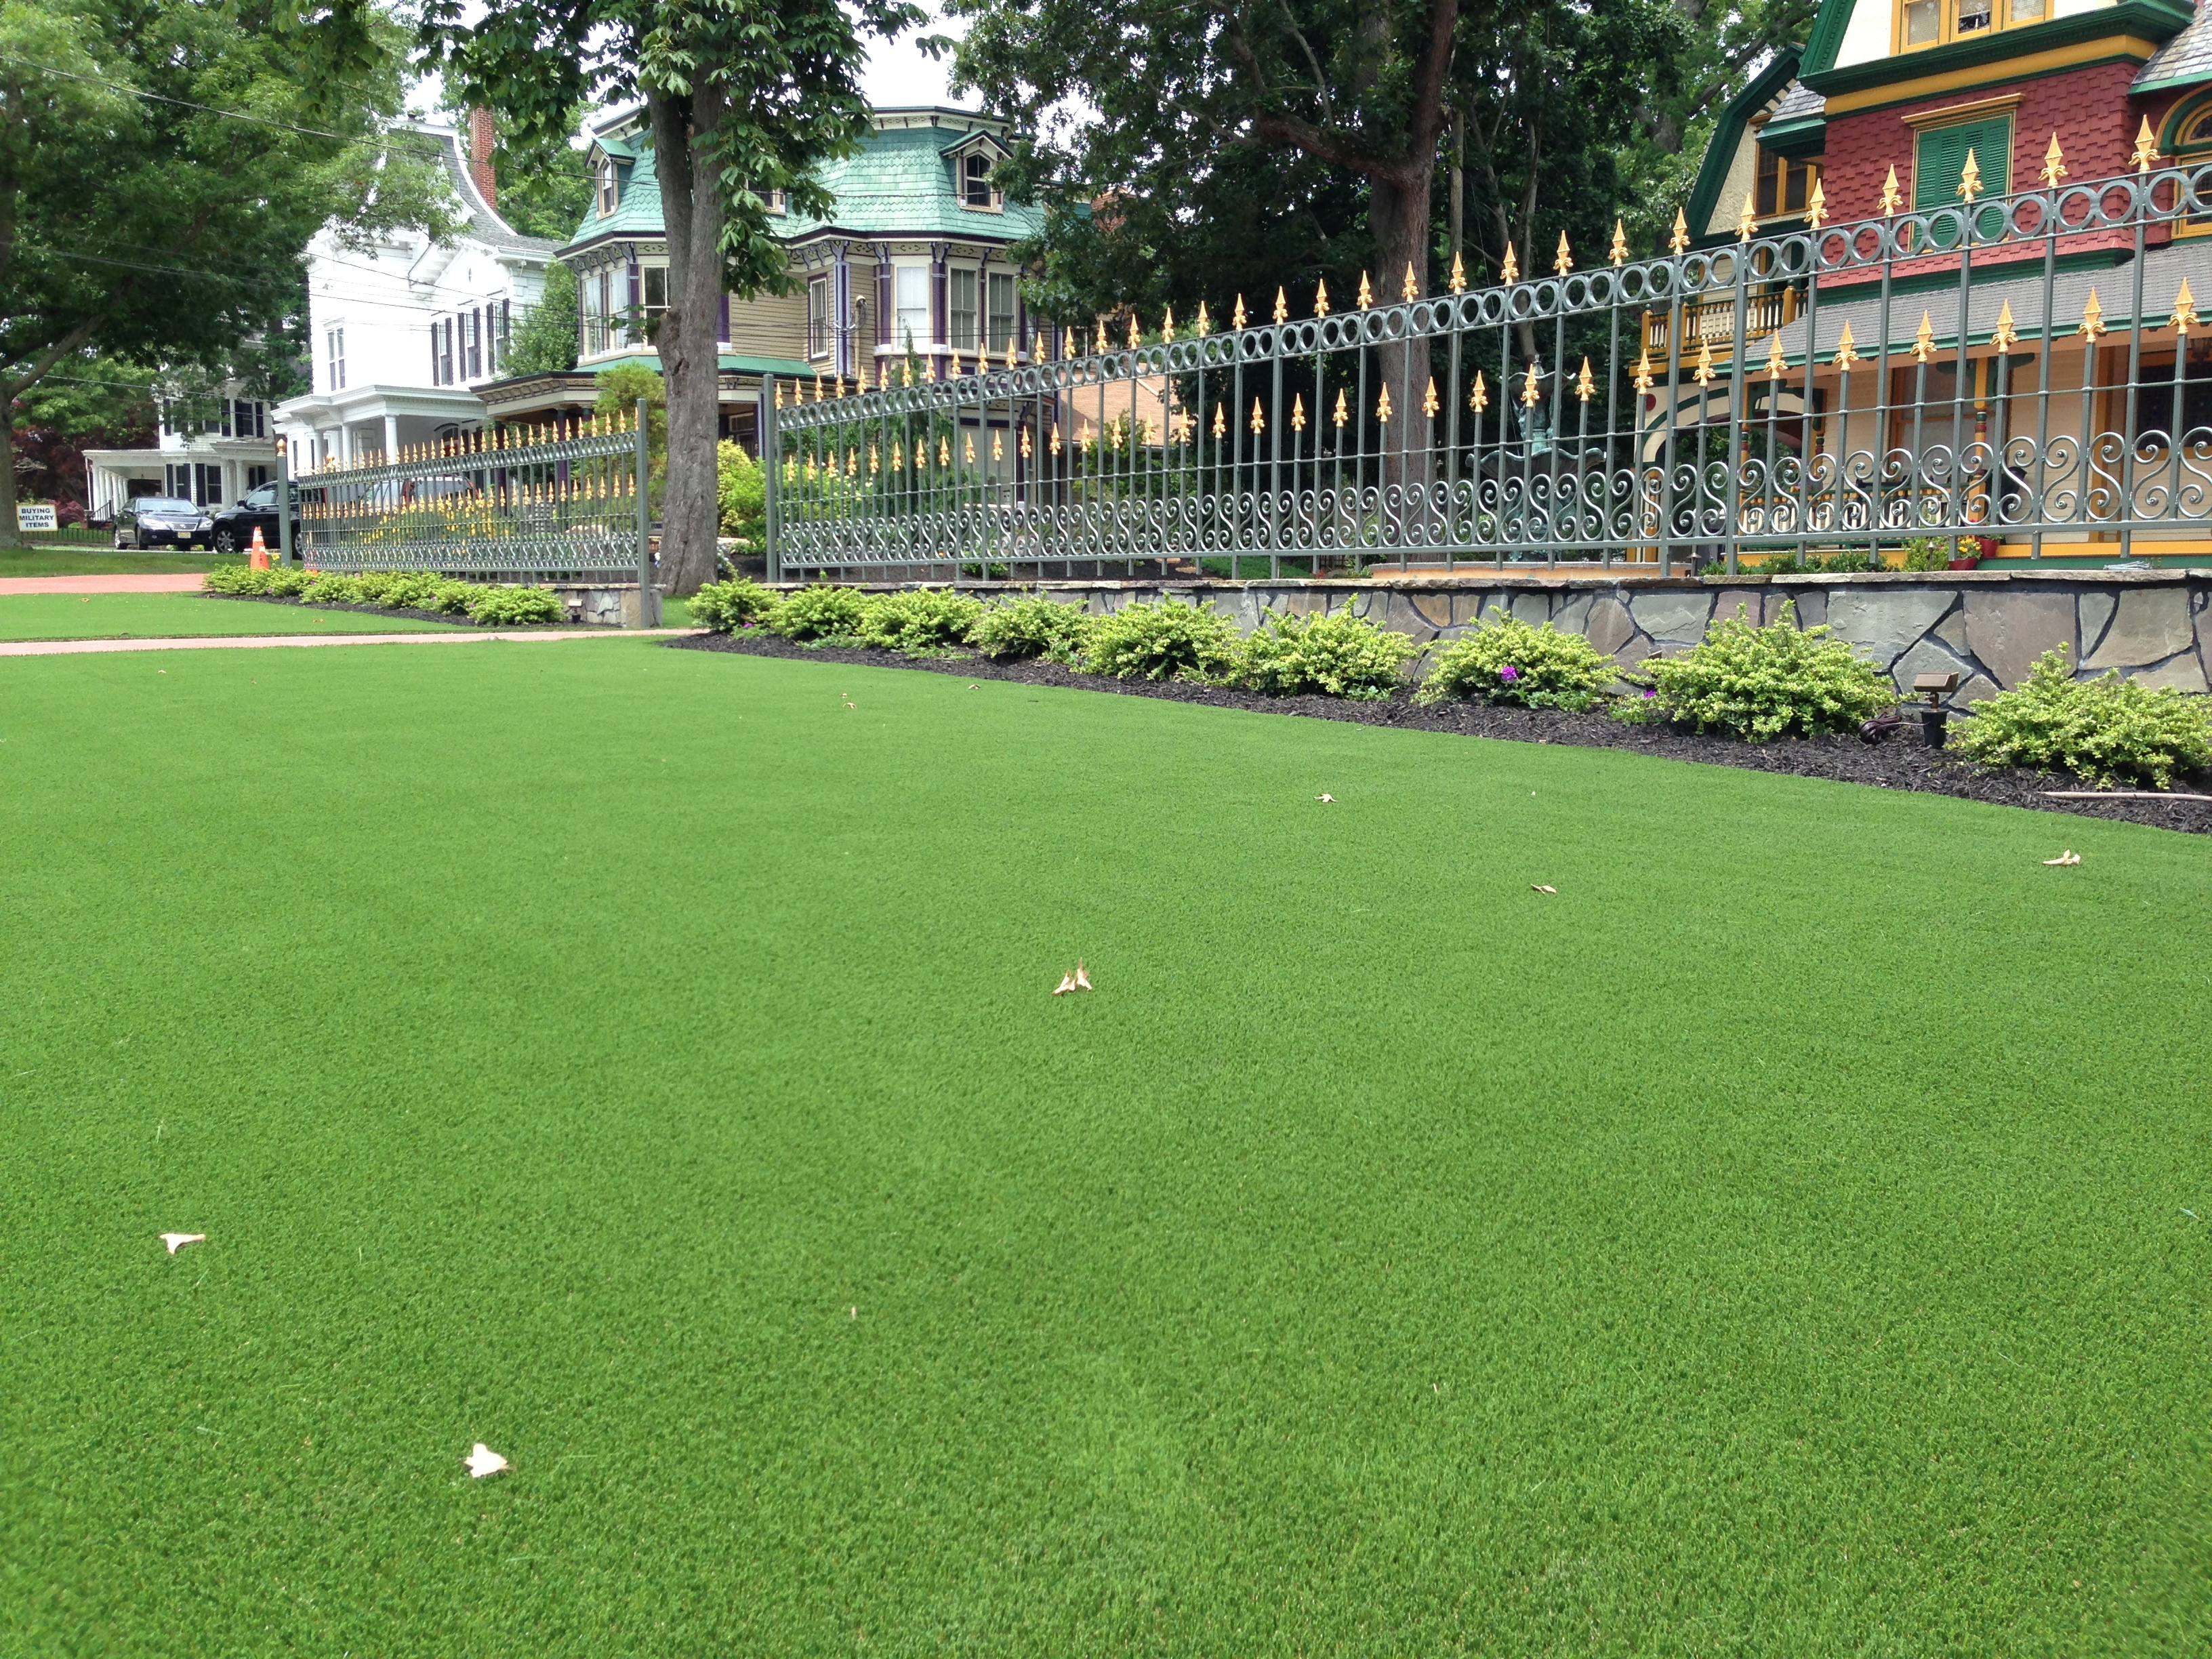 Artificial turf yards in front of Phildelphia Victorian homes